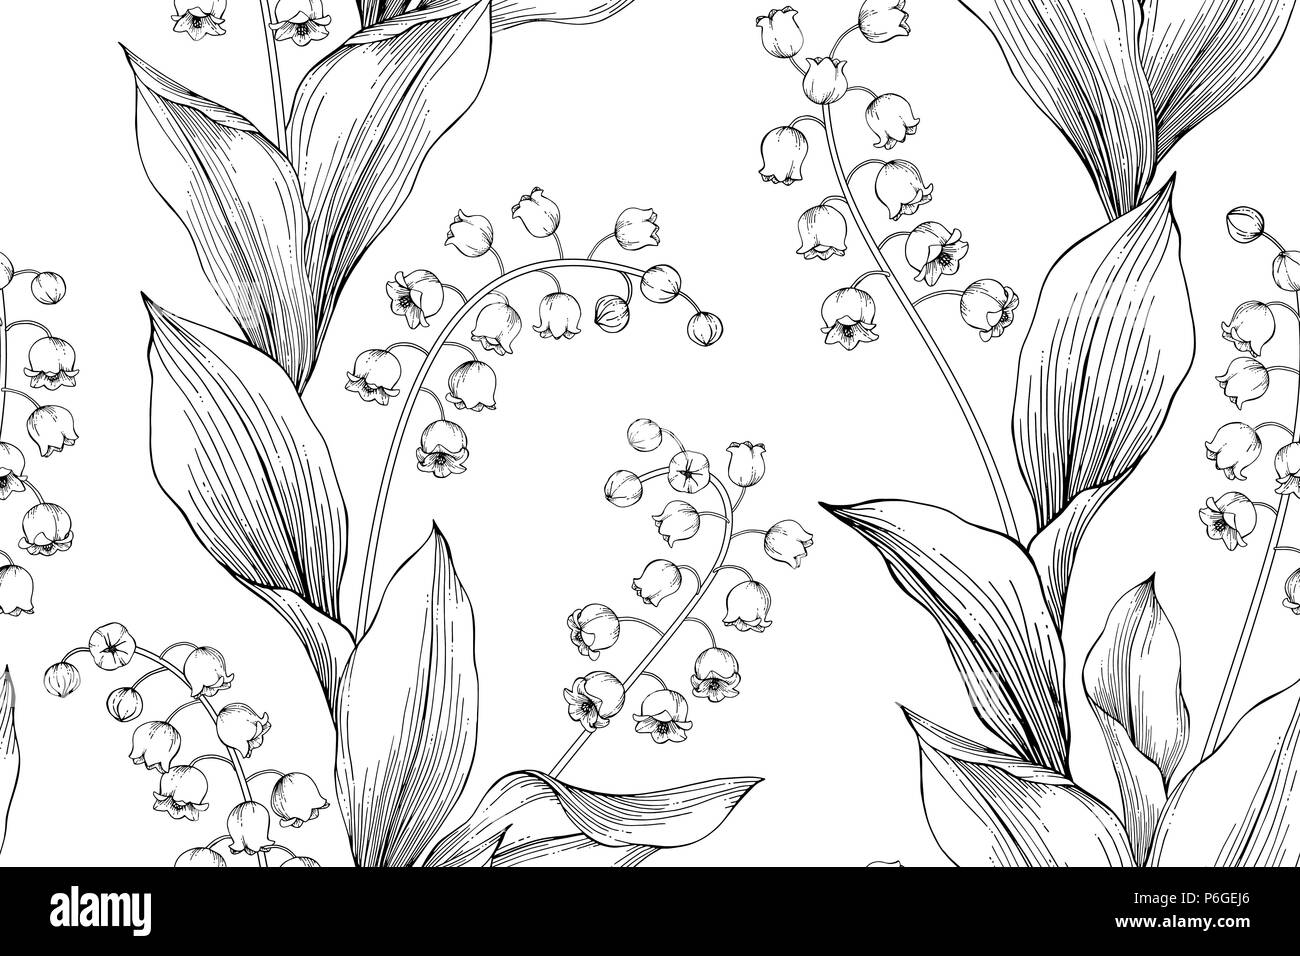 lily of the valley drawing stock photos amp lily of the